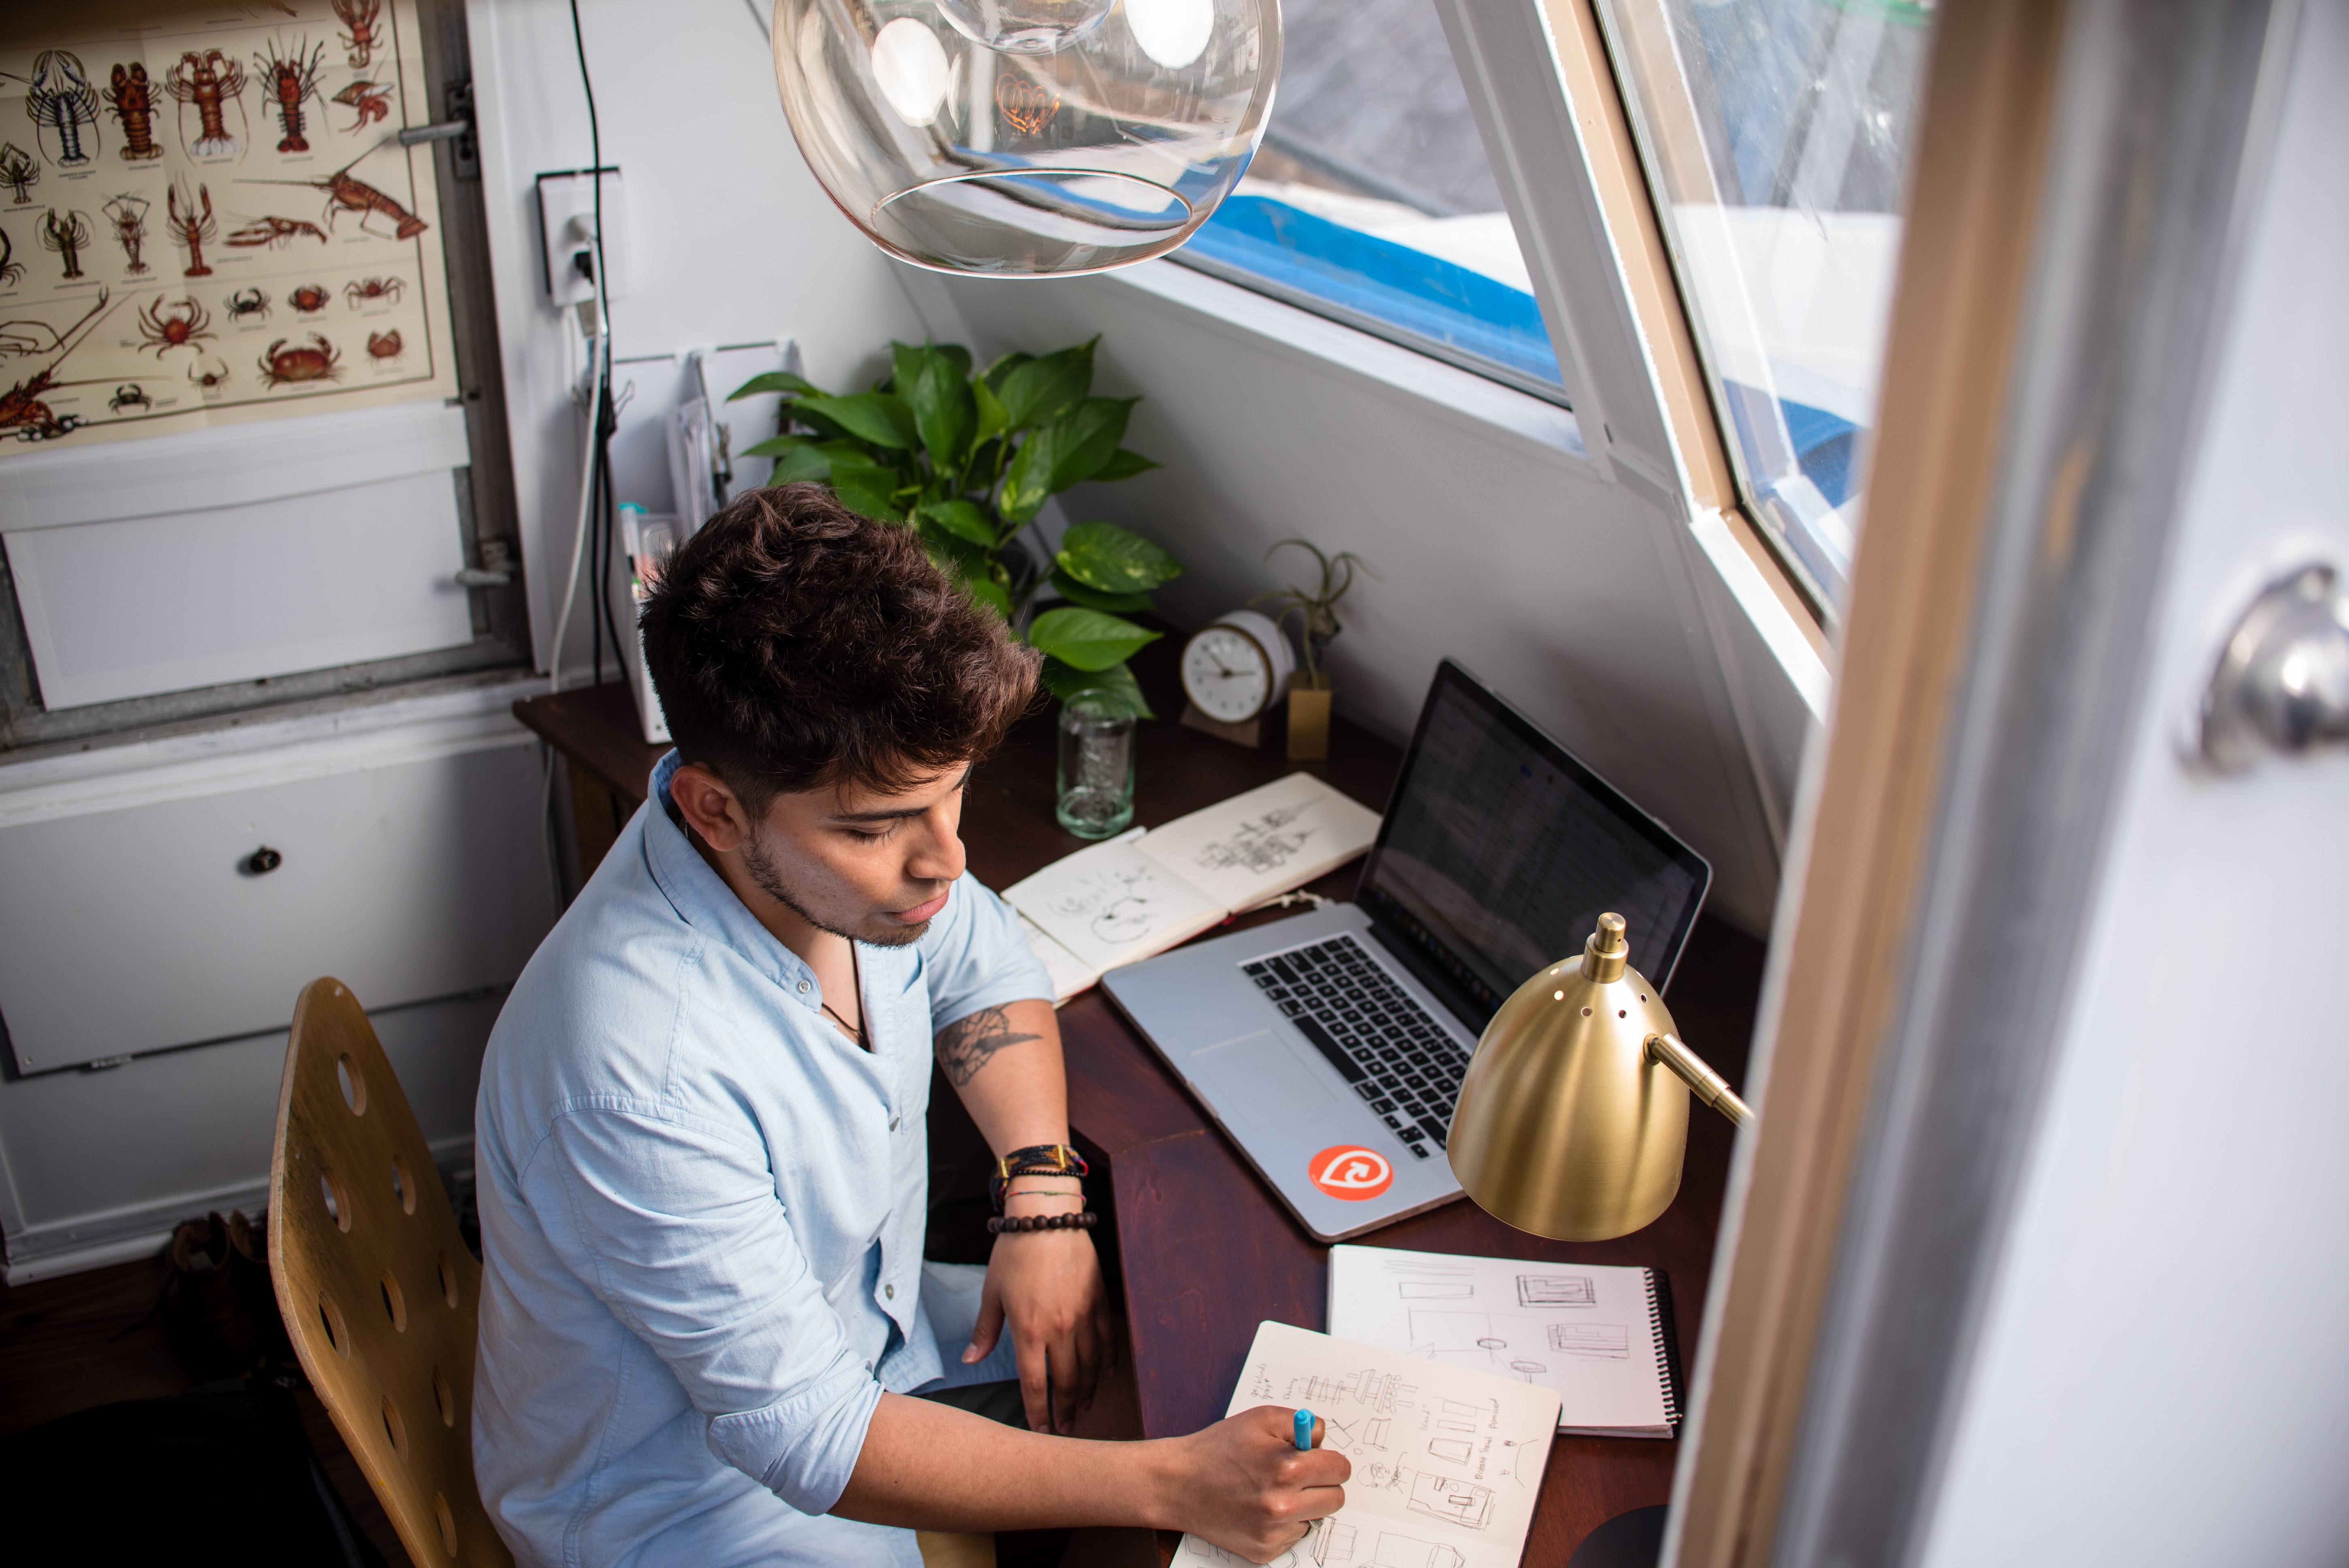 Productivity hacks while working from home